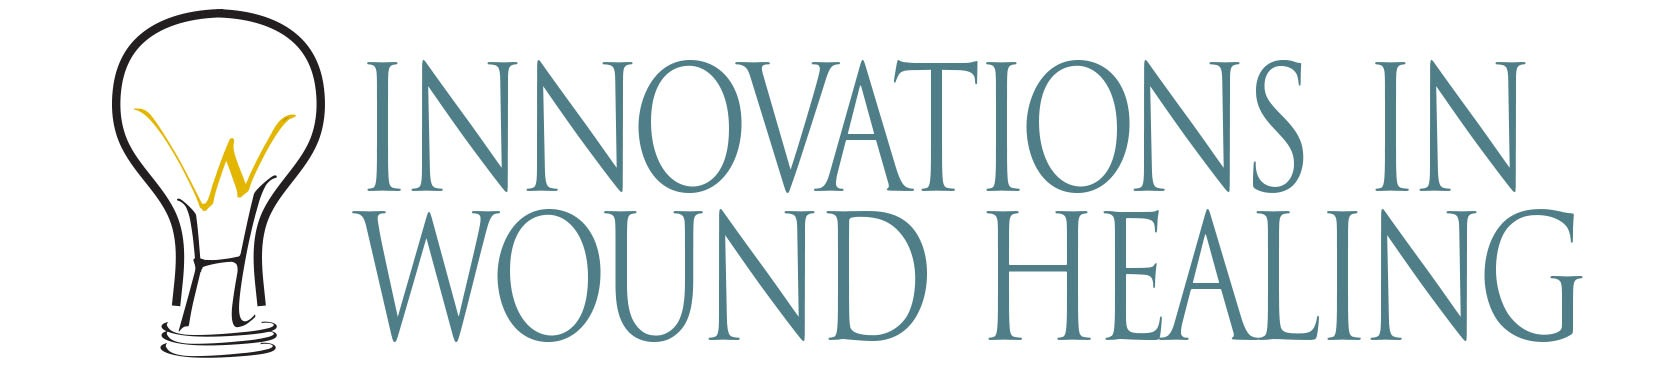 2018 INNOVATIONS IN WOUND HEALING